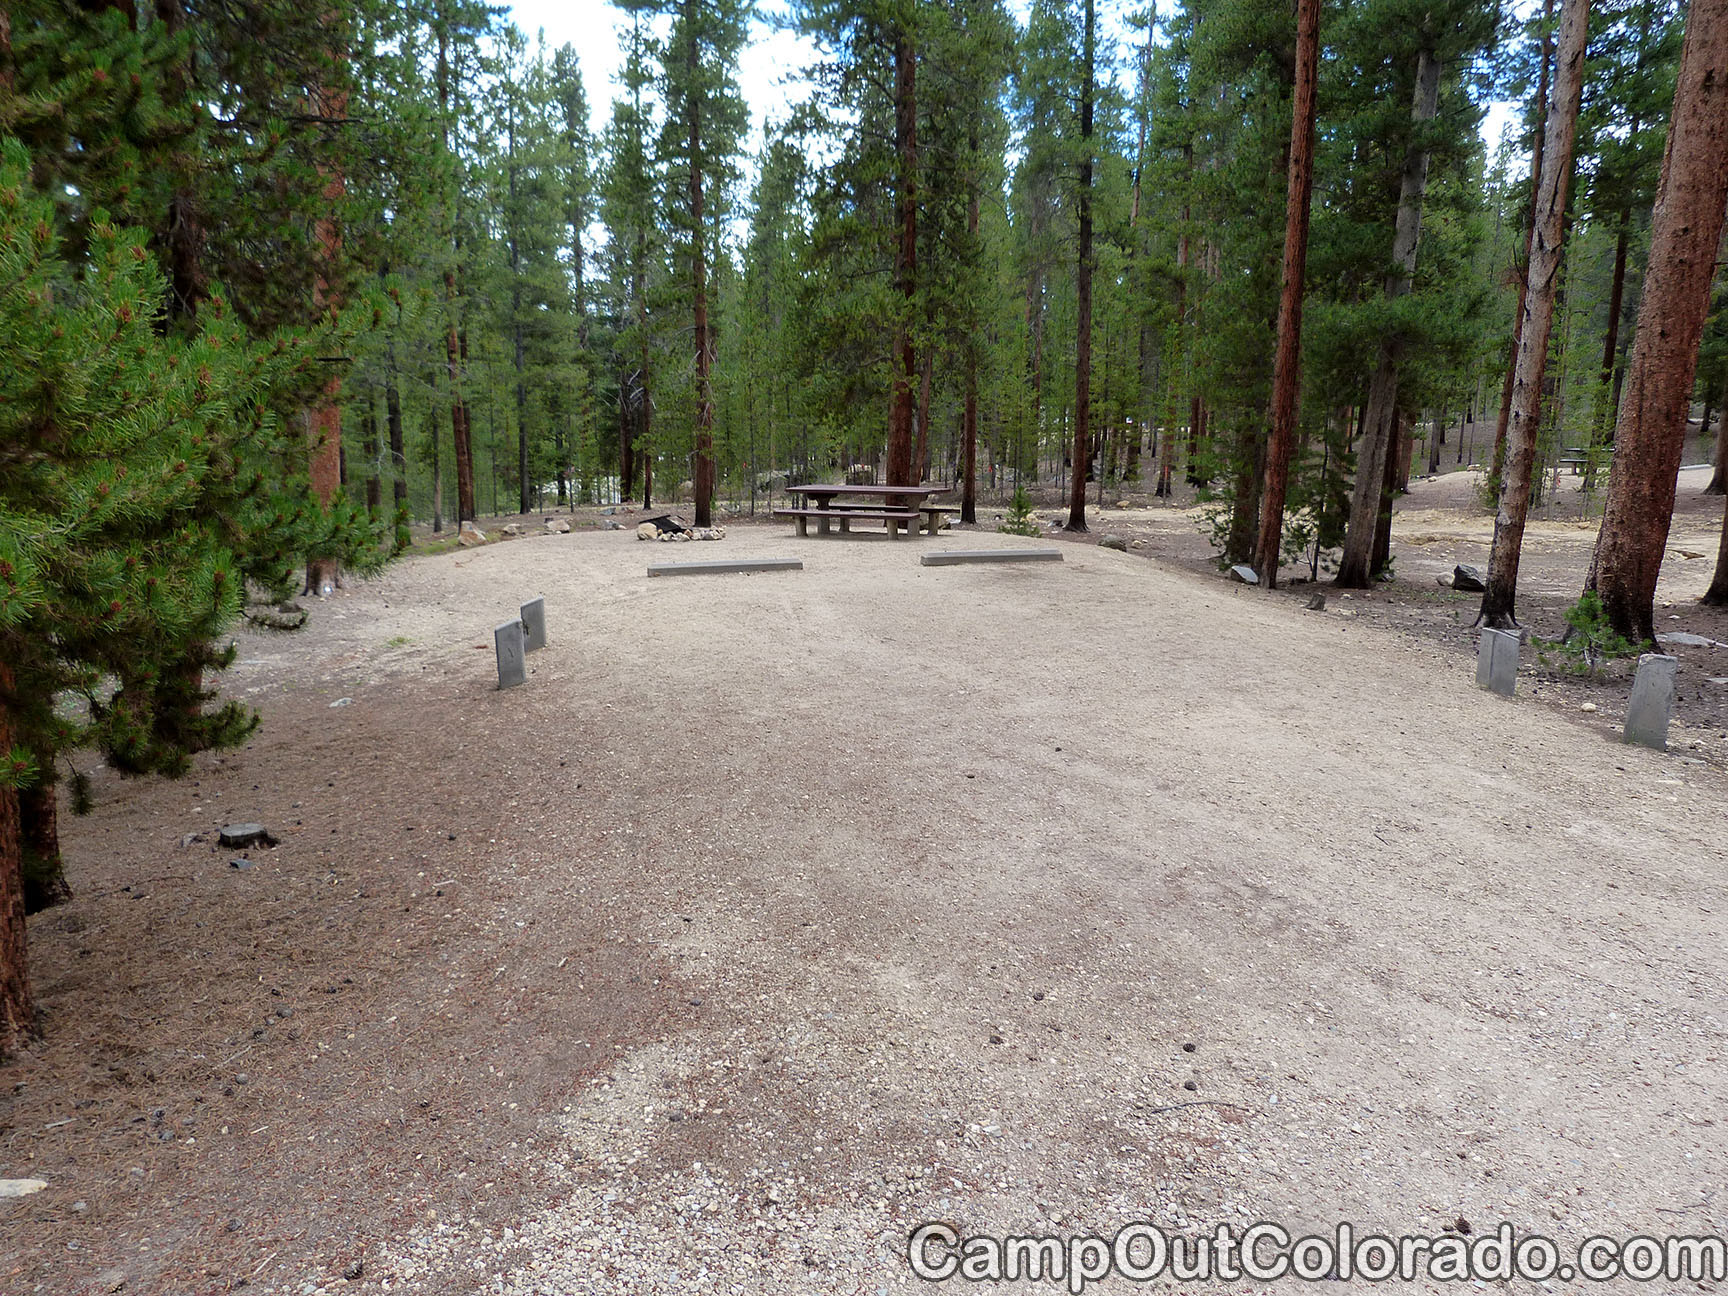 Camp-out-colorado-molly-brown-turquoise-lake-hill